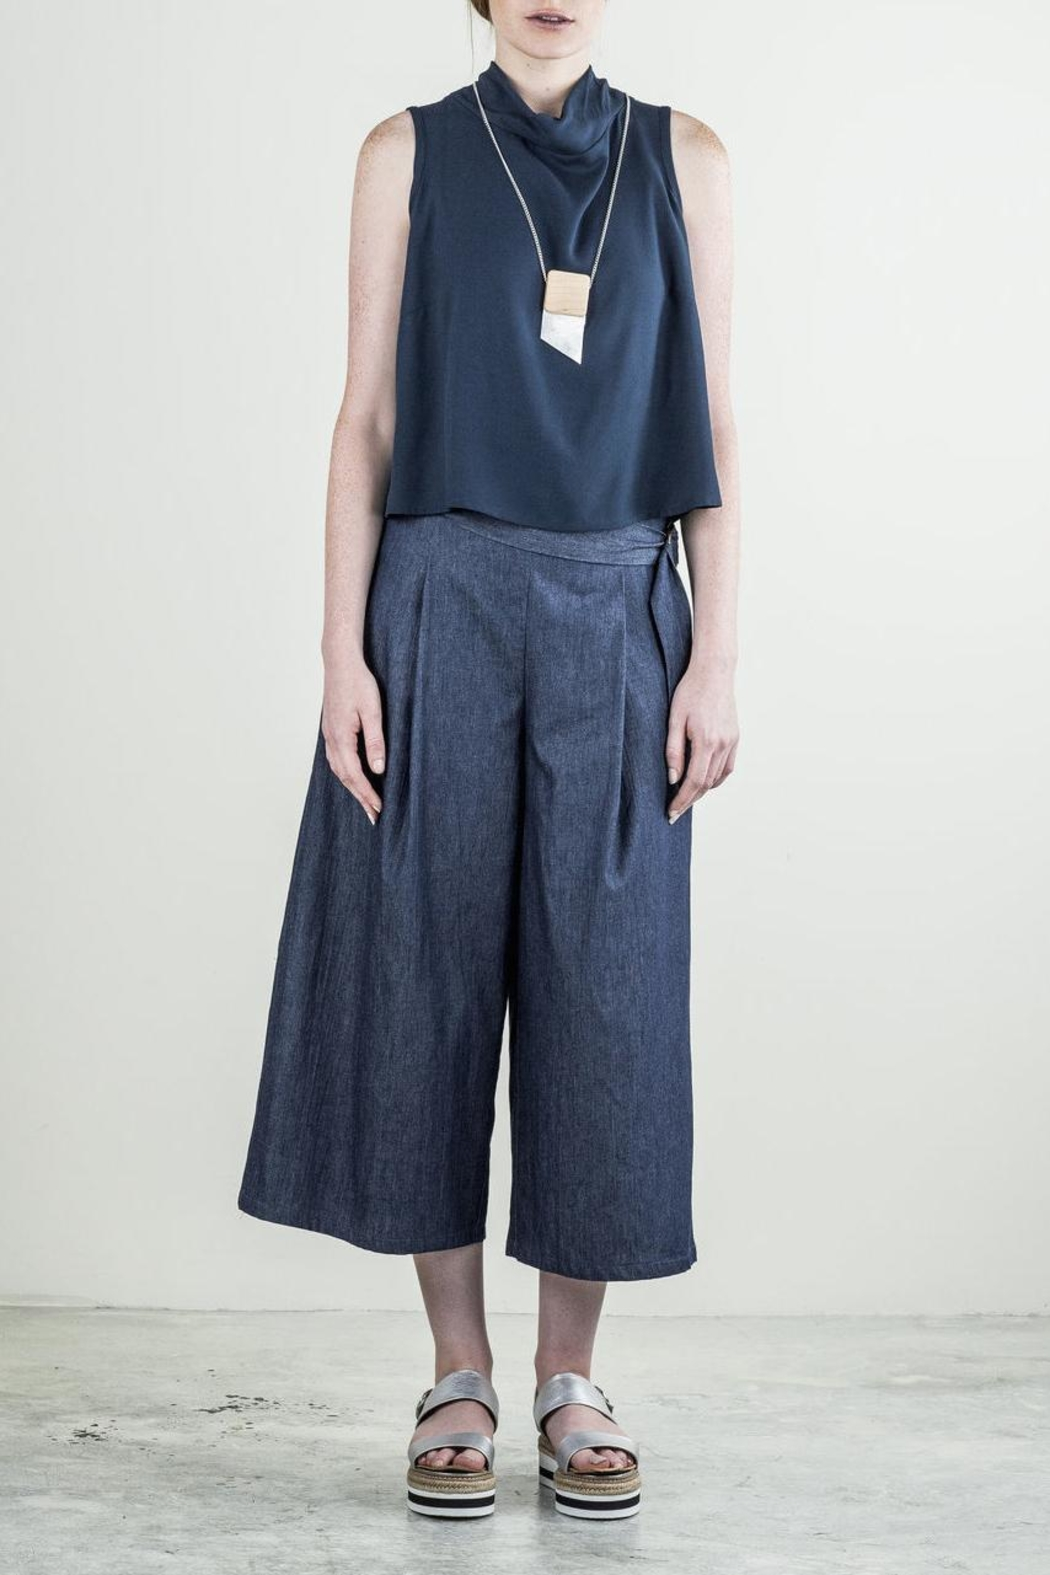 Bodybag by Jude Sleeveless Crop Top - Main Image